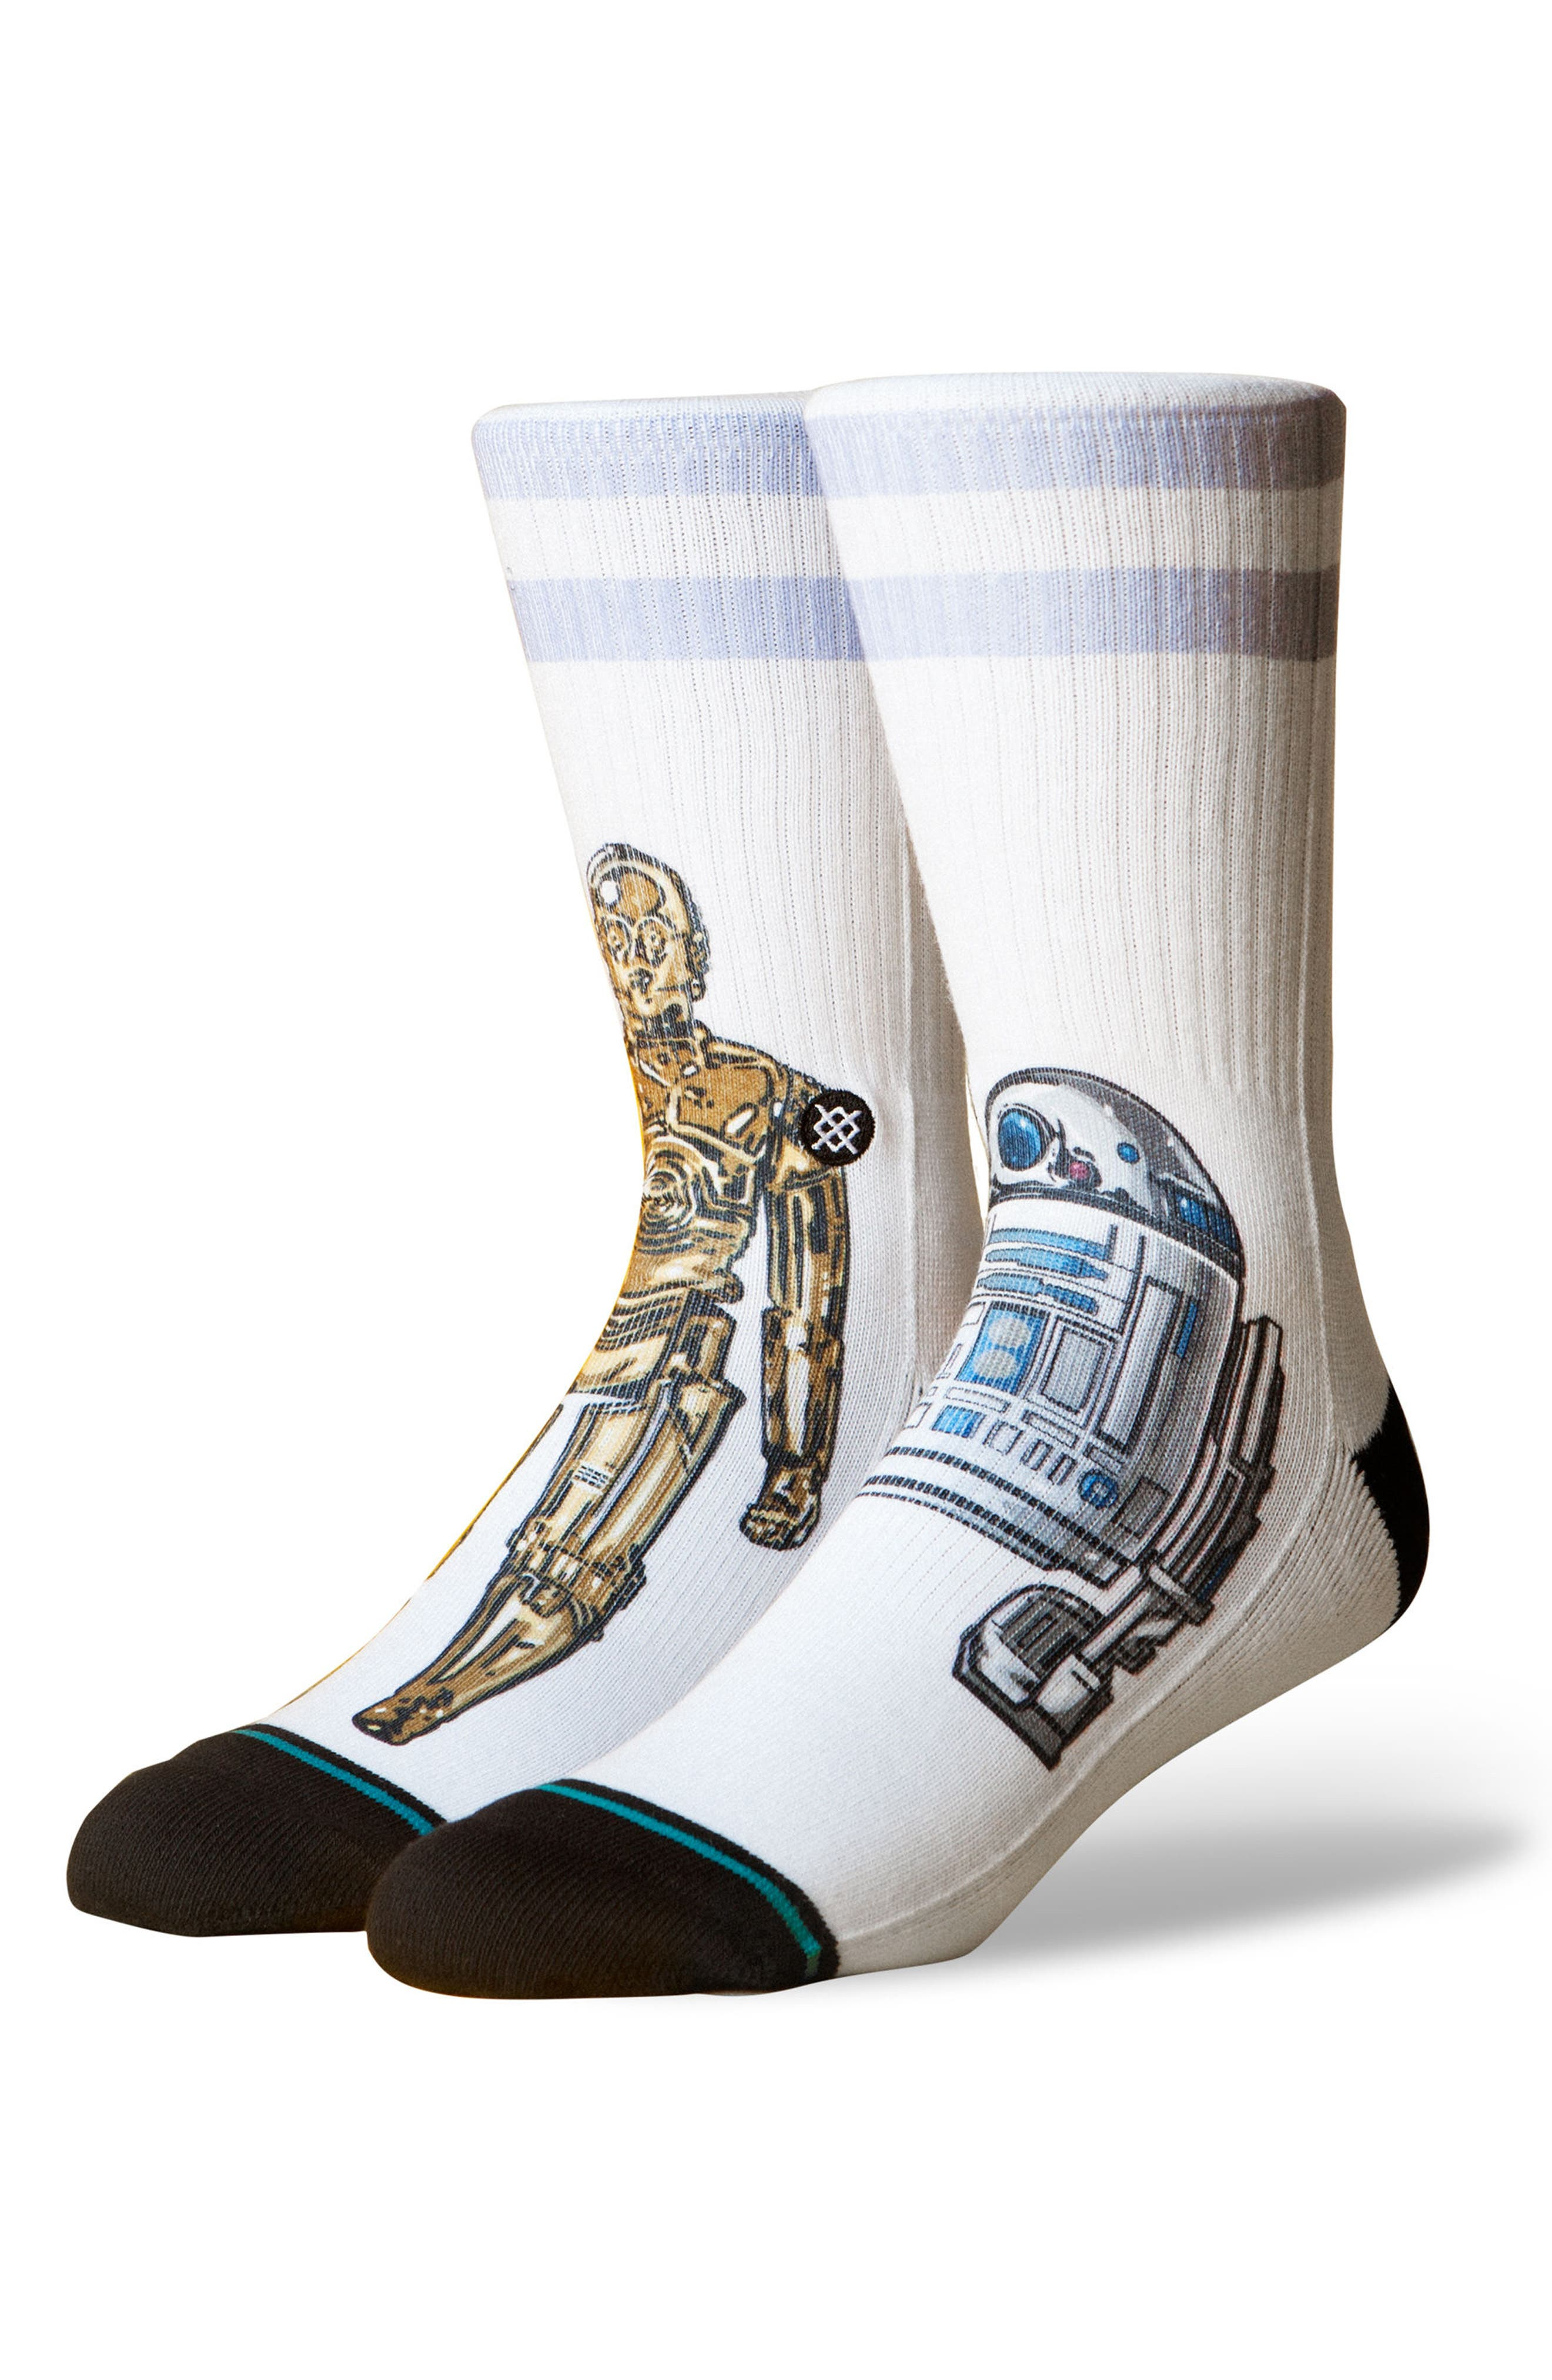 Star Wars<sup>™</sup> Prime Condition Socks,                         Main,                         color, 100